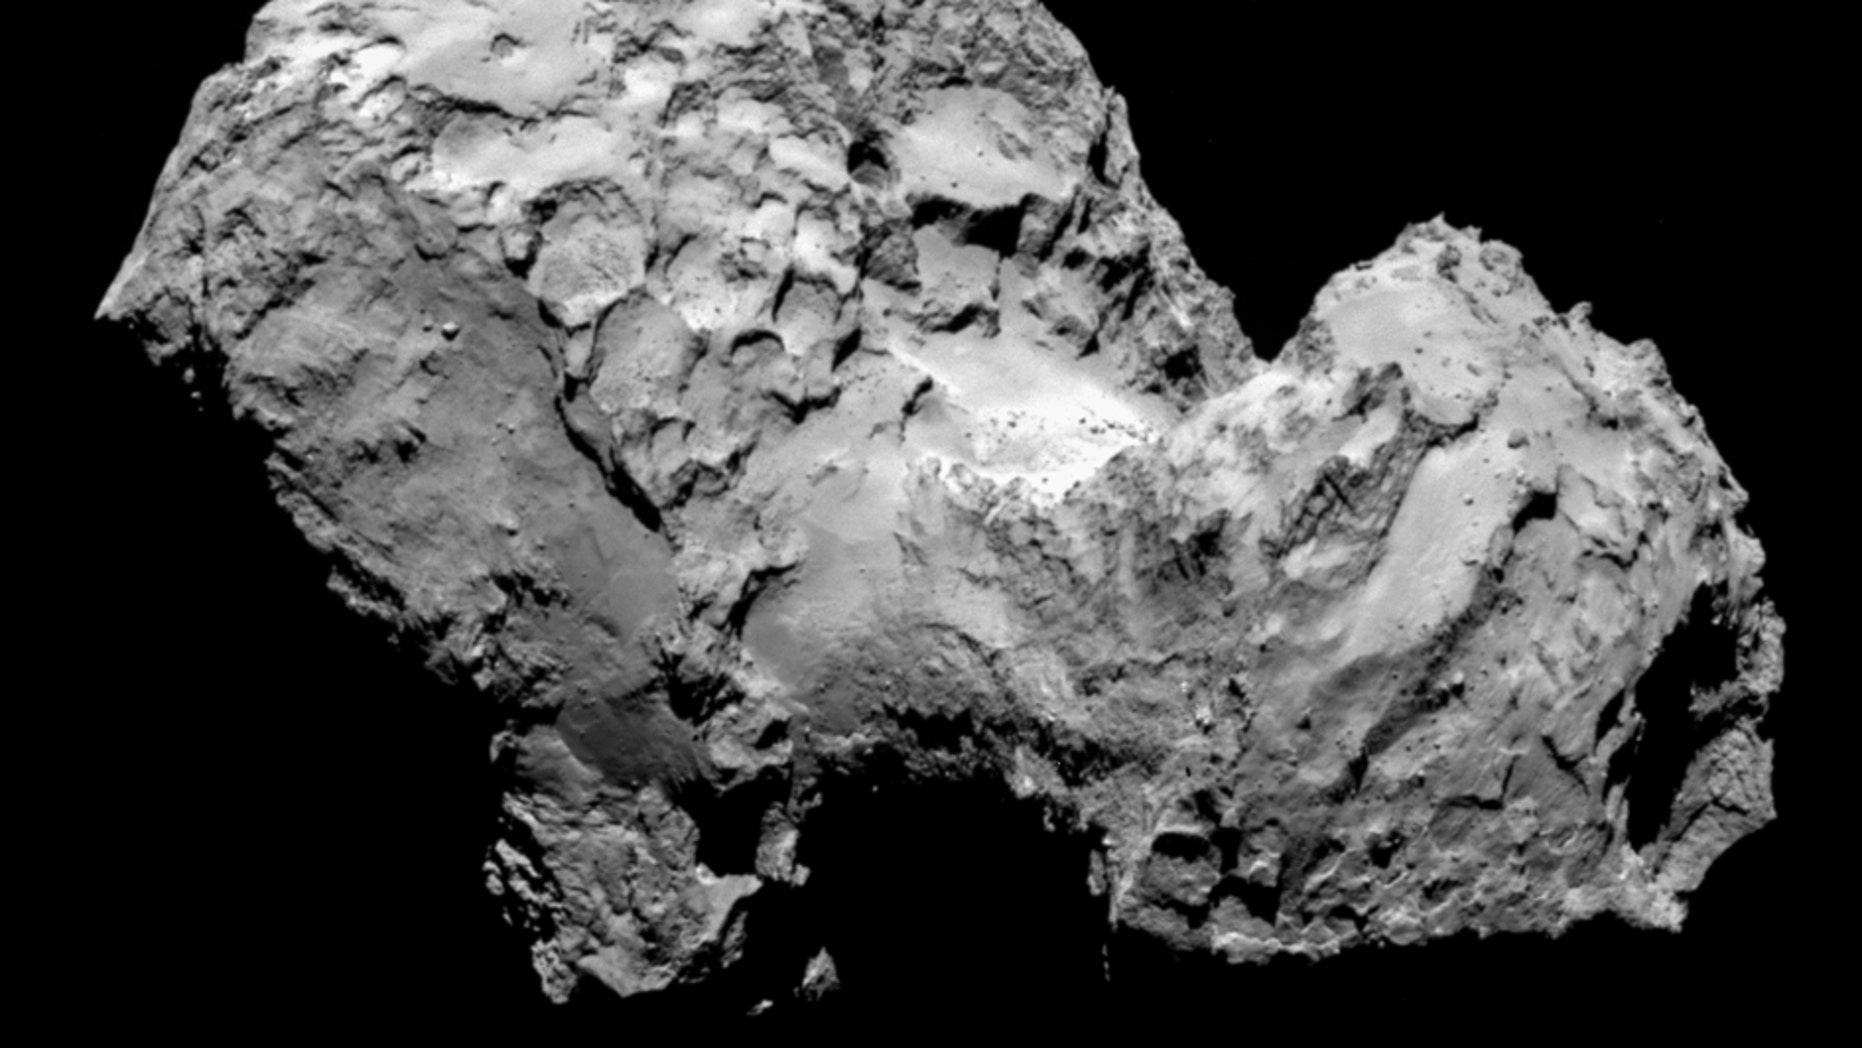 FILE - In this Aug. 3, 2014 file photo taken by Rosetta's OSIRIS narrow-angle camera Comet 67P/Churyumov-Gerasimenko is pictured from a distance of 285 kms. Scientists at the European Space Agency on Monday, Sept. 15, 2014, announced the spot where they will attempt the first landing on a comet hurtling through space at 55,000 kph (34,000 mph). The maneuver is one of the key moments in the decade-long mission to examine the comet and learn more about the origins and evolution of objects in the universe. (AP Photo/ESA/Rosetta/MPS for OSIRIS Team, File )